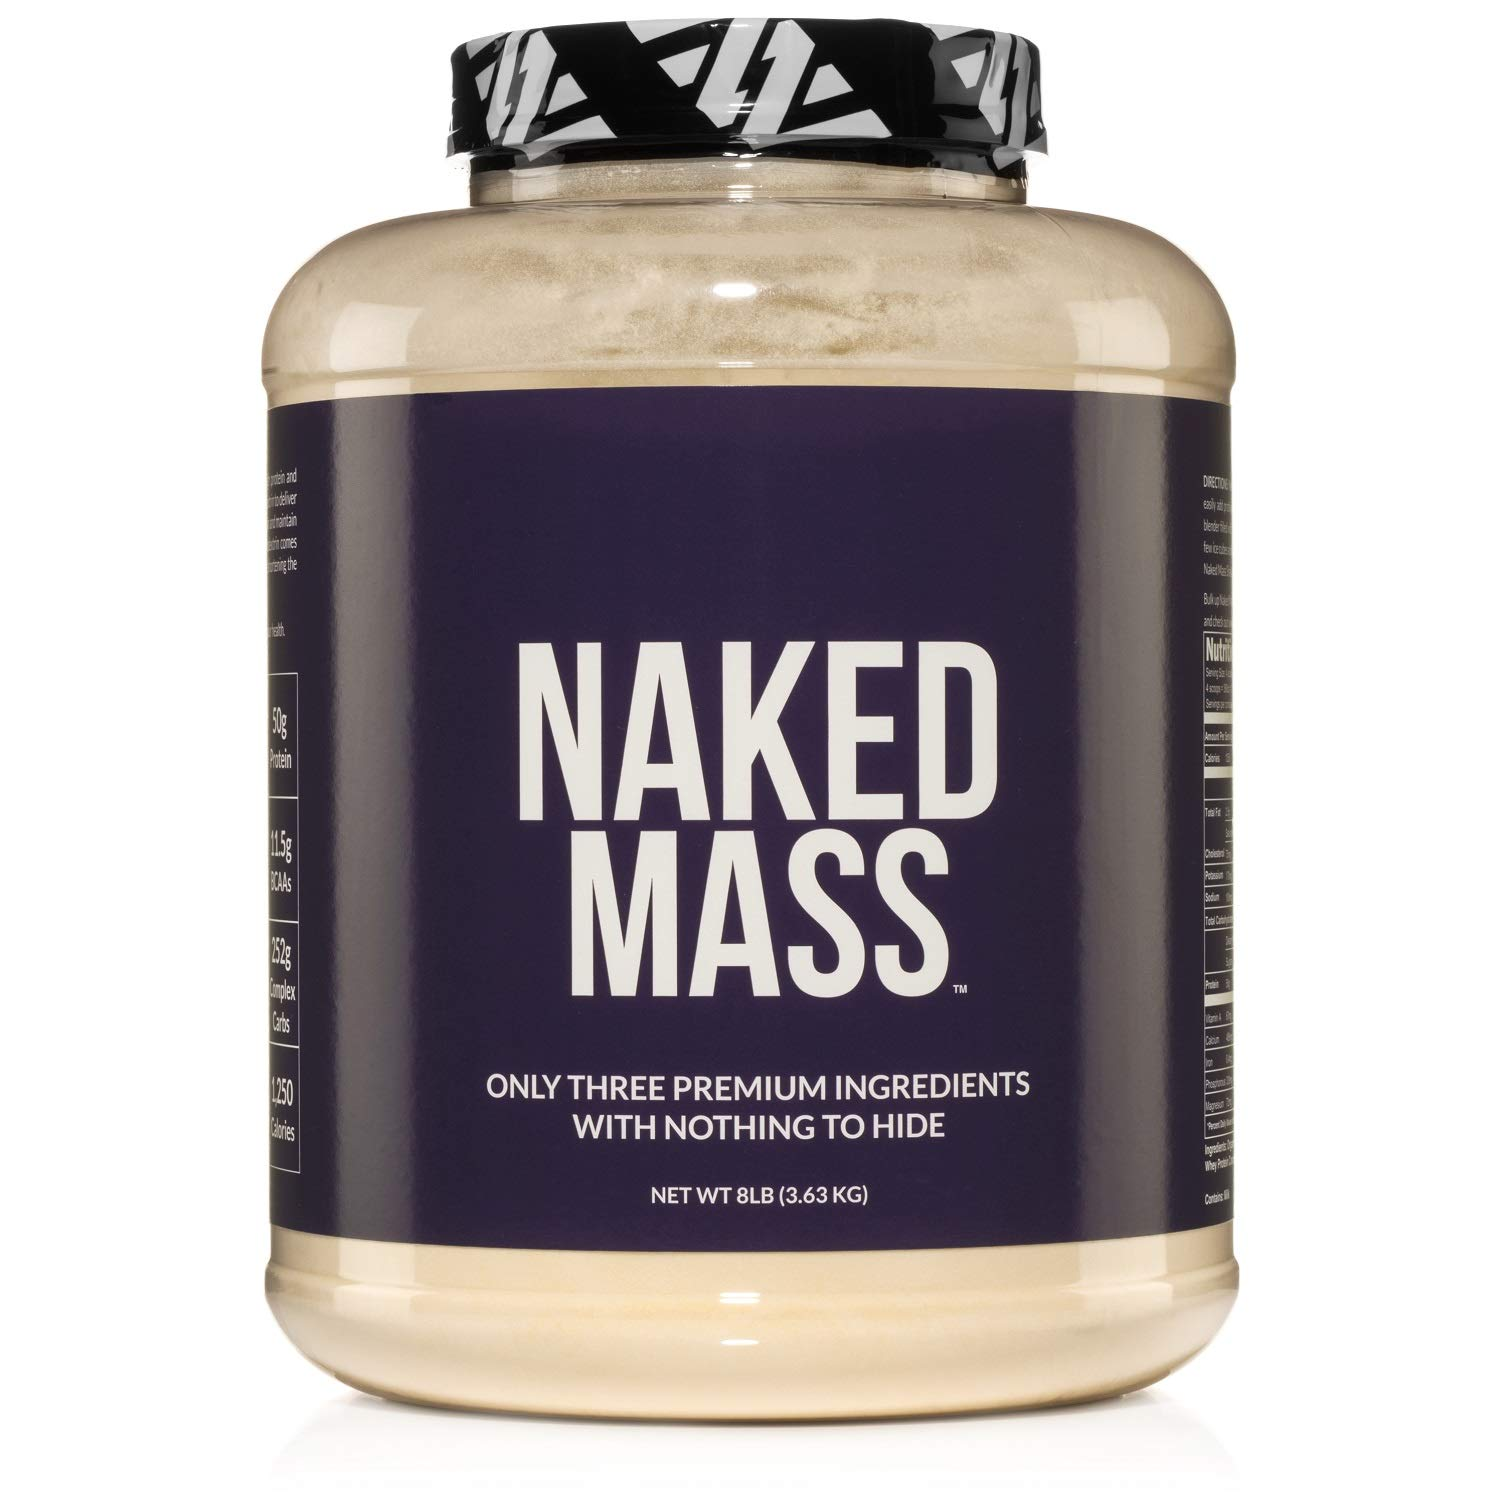 NAKED MASS - Natural Weight Gainer Protein Powder - 8lb Bulk, GMO Free, Gluten Free & Soy Free. No Artificial Ingredients - 1,250 Calories - 11 Servings by NAKED nutrition